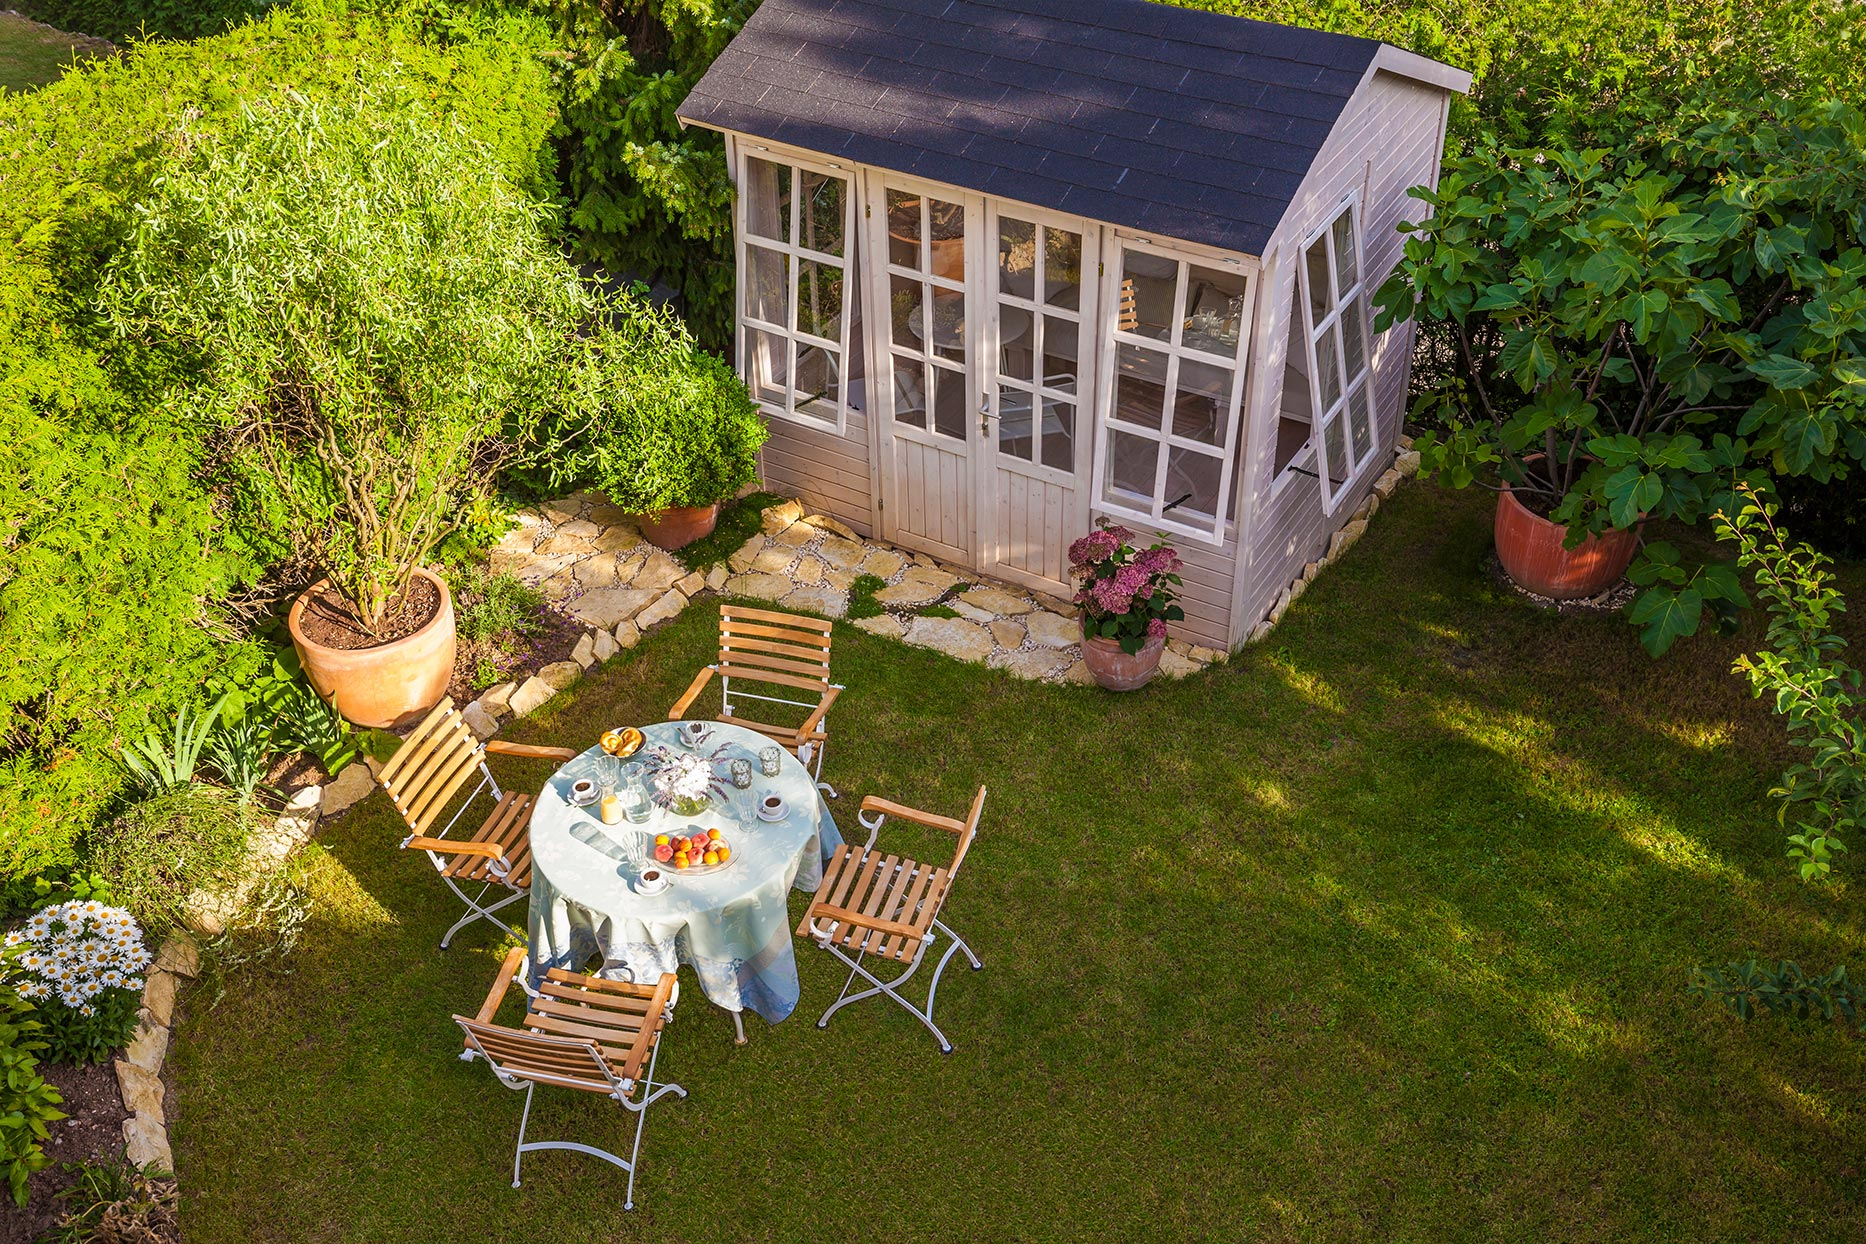 overhead view of garden shed